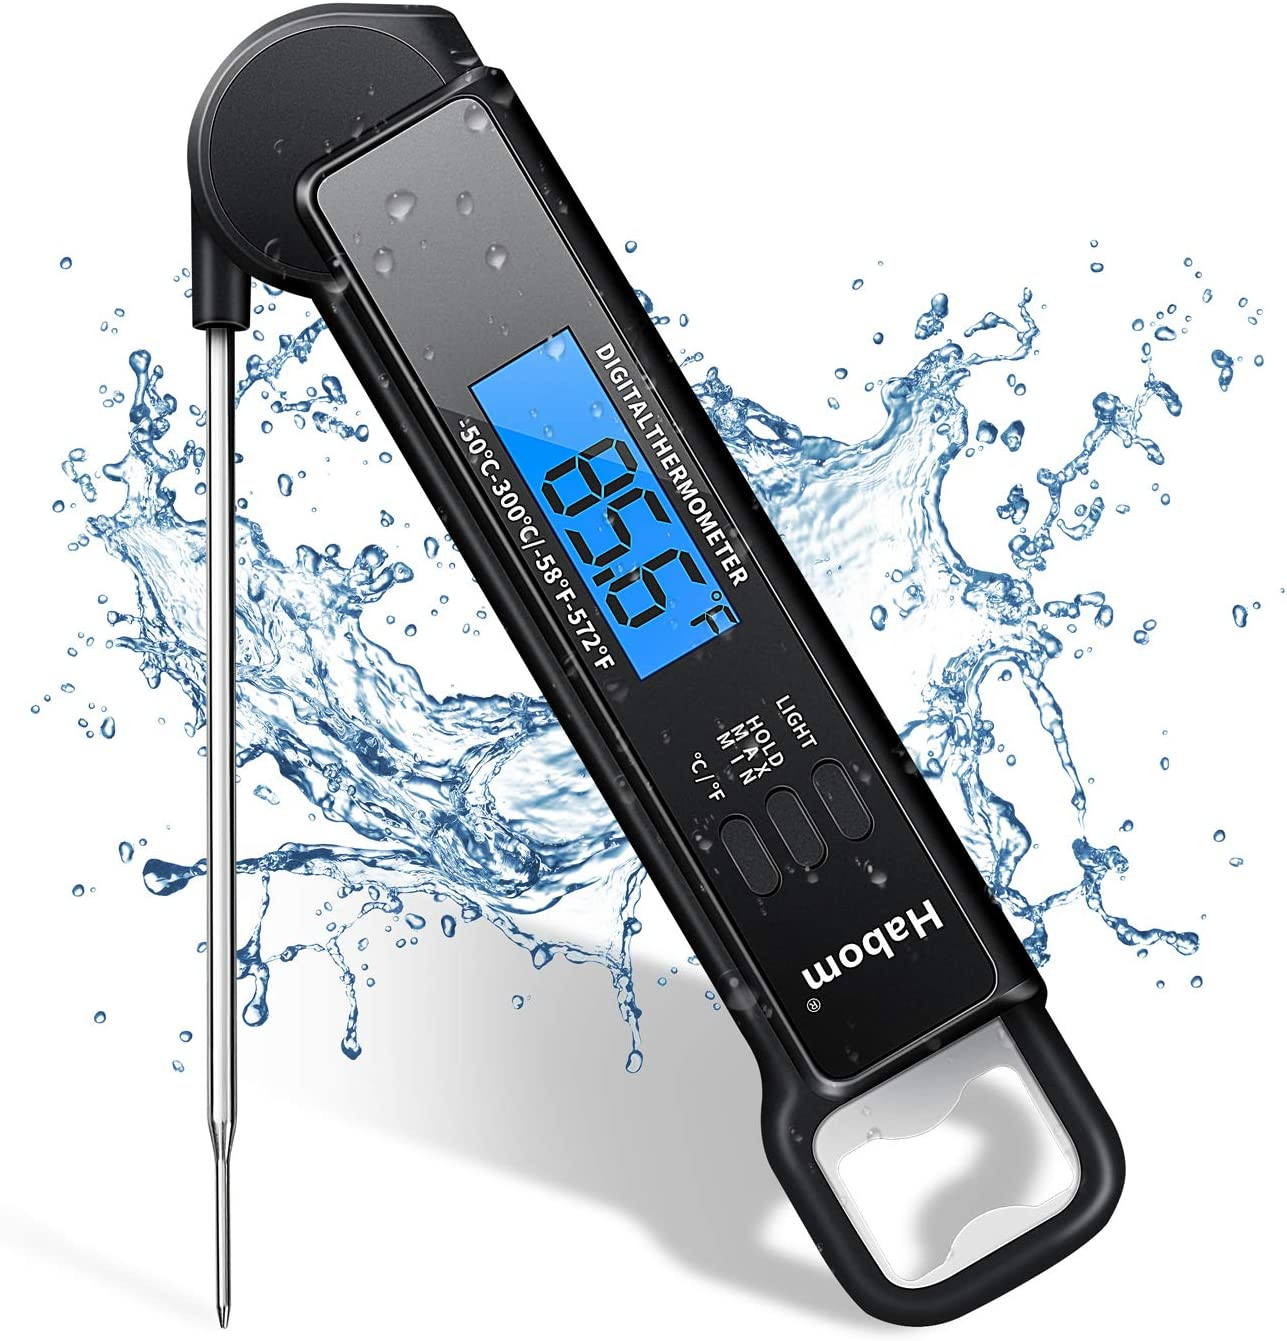 HABOM Instant Read Meat Thermometer for Grill and Cooking-Waterproof Ultra Fast Thermometer with Backlight & Calibration. Digital Food Probe for Kitchen, Outdoor Grilling and BBQ!